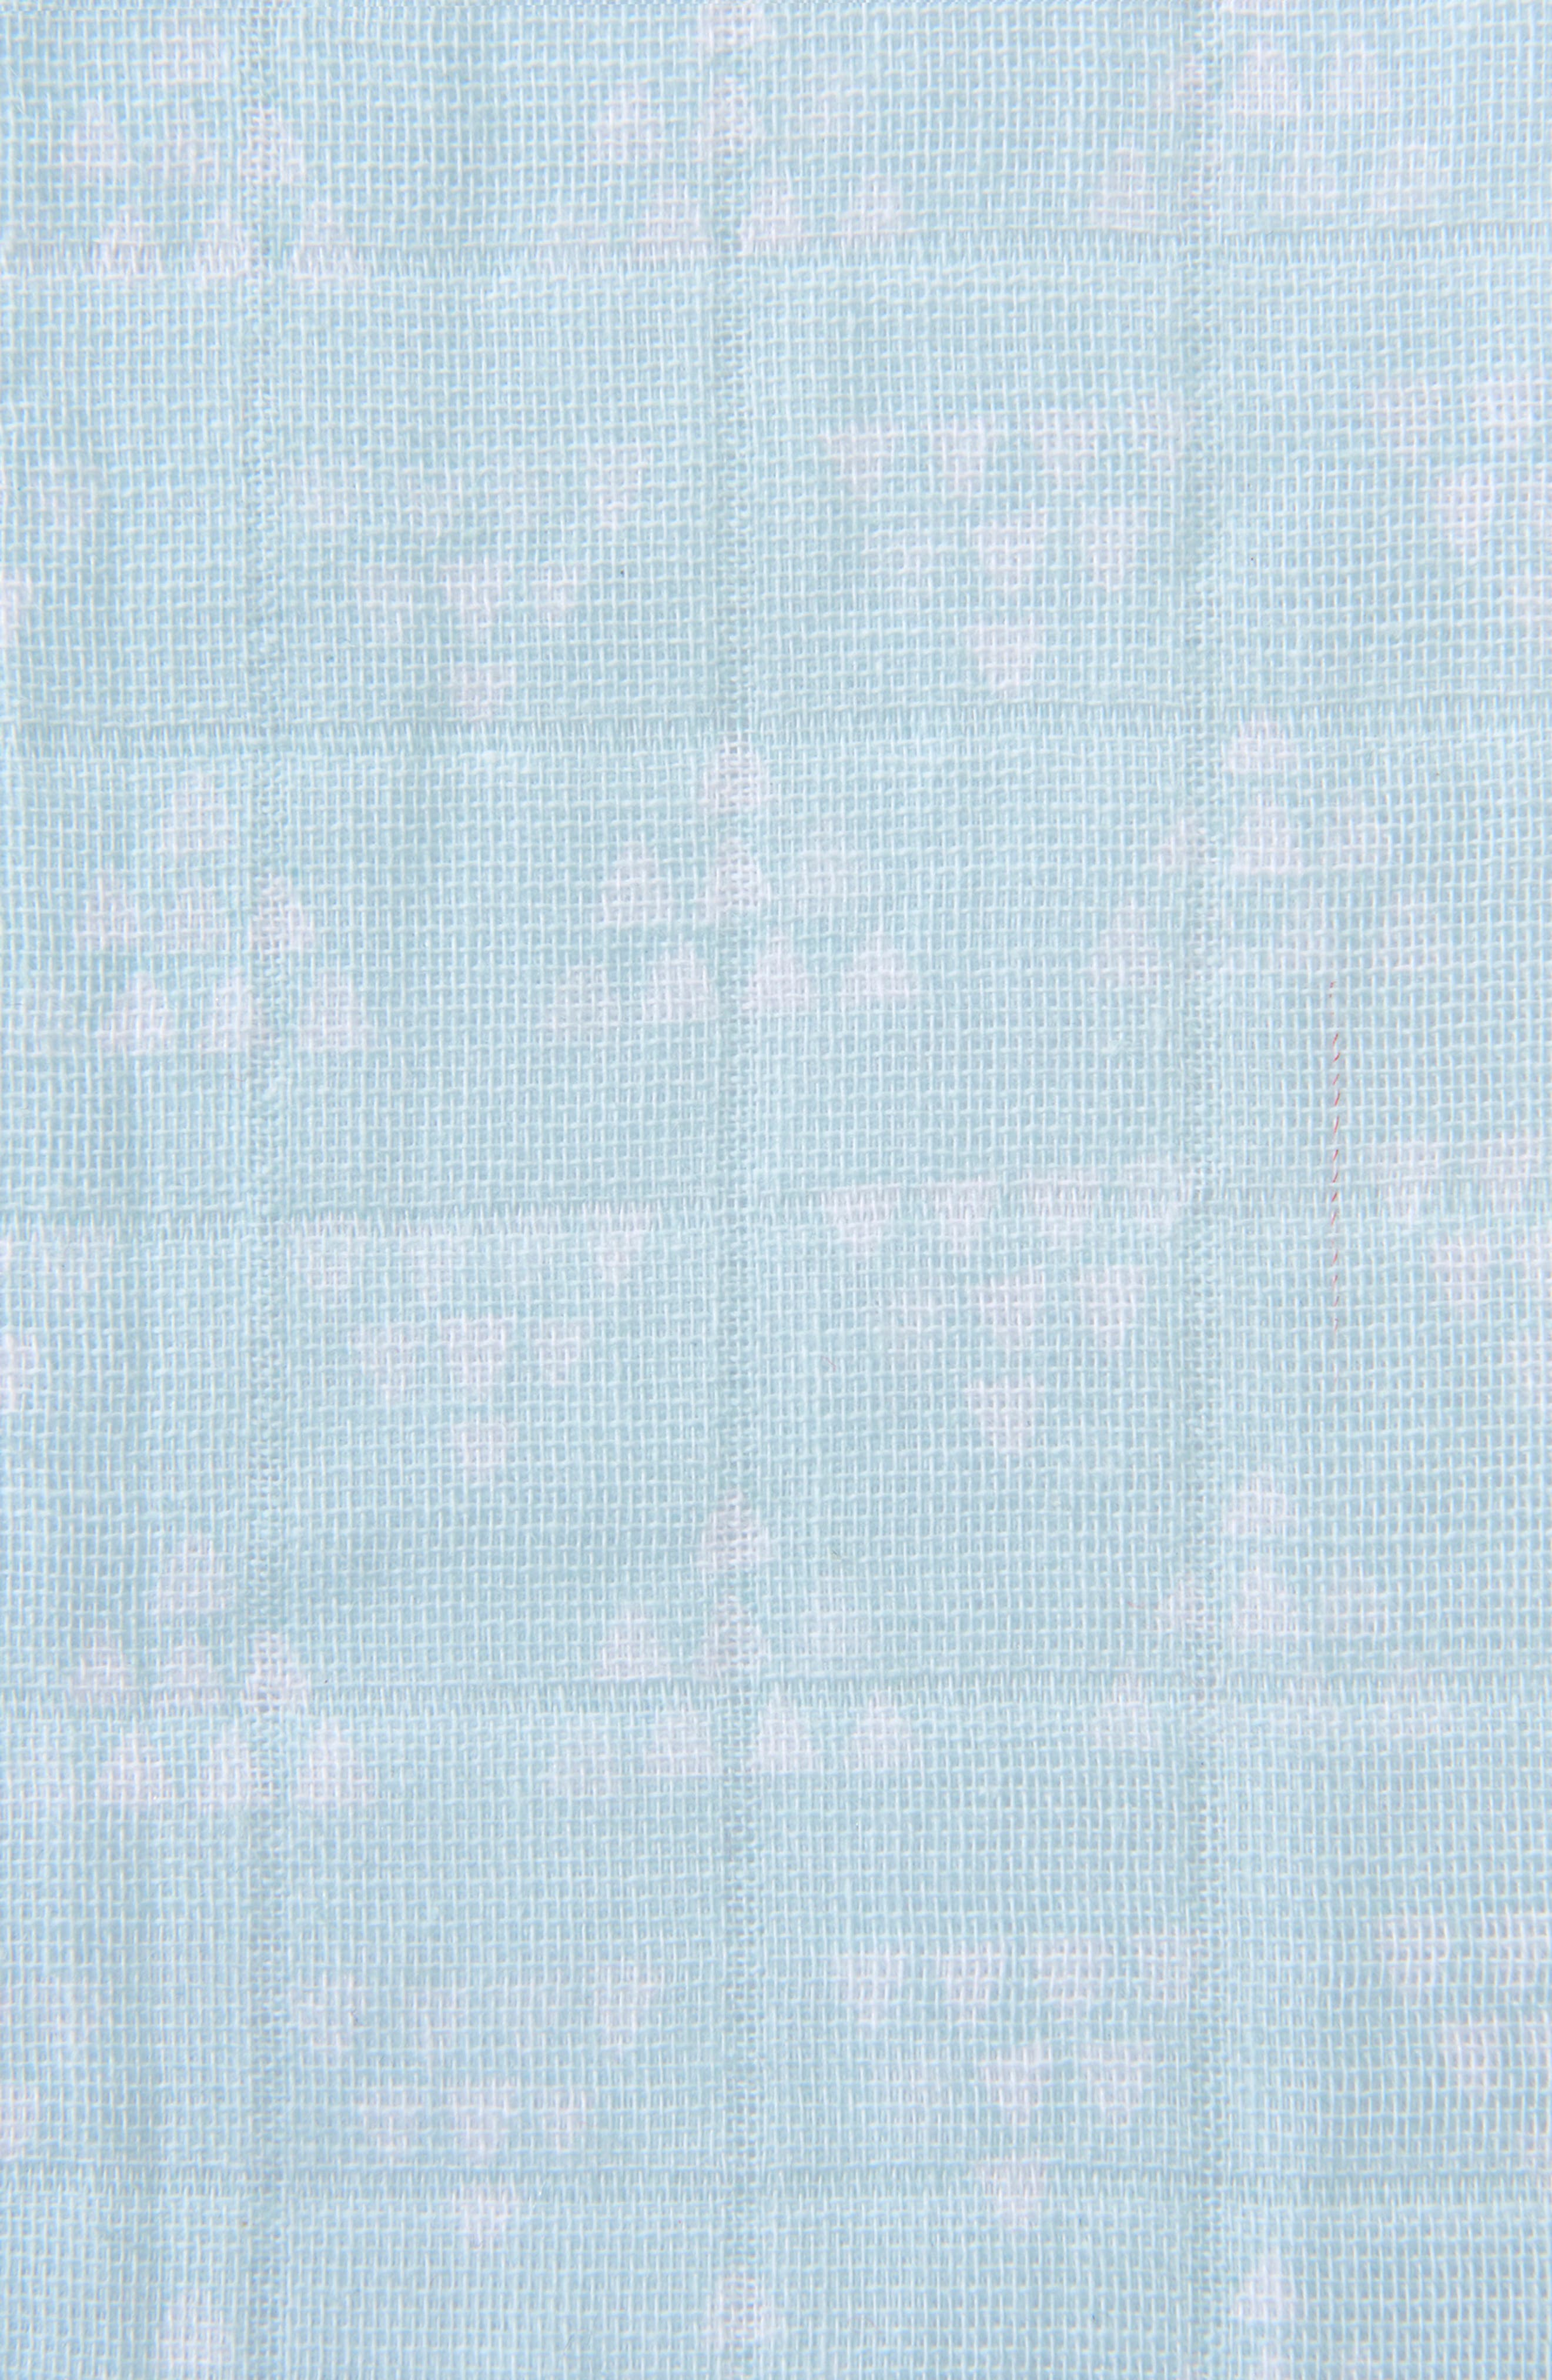 Platinum Series SleepSack<sup>™</sup> Quilted Muslin Wearable Blanket,                             Alternate thumbnail 6, color,                             MINT PYRAMID